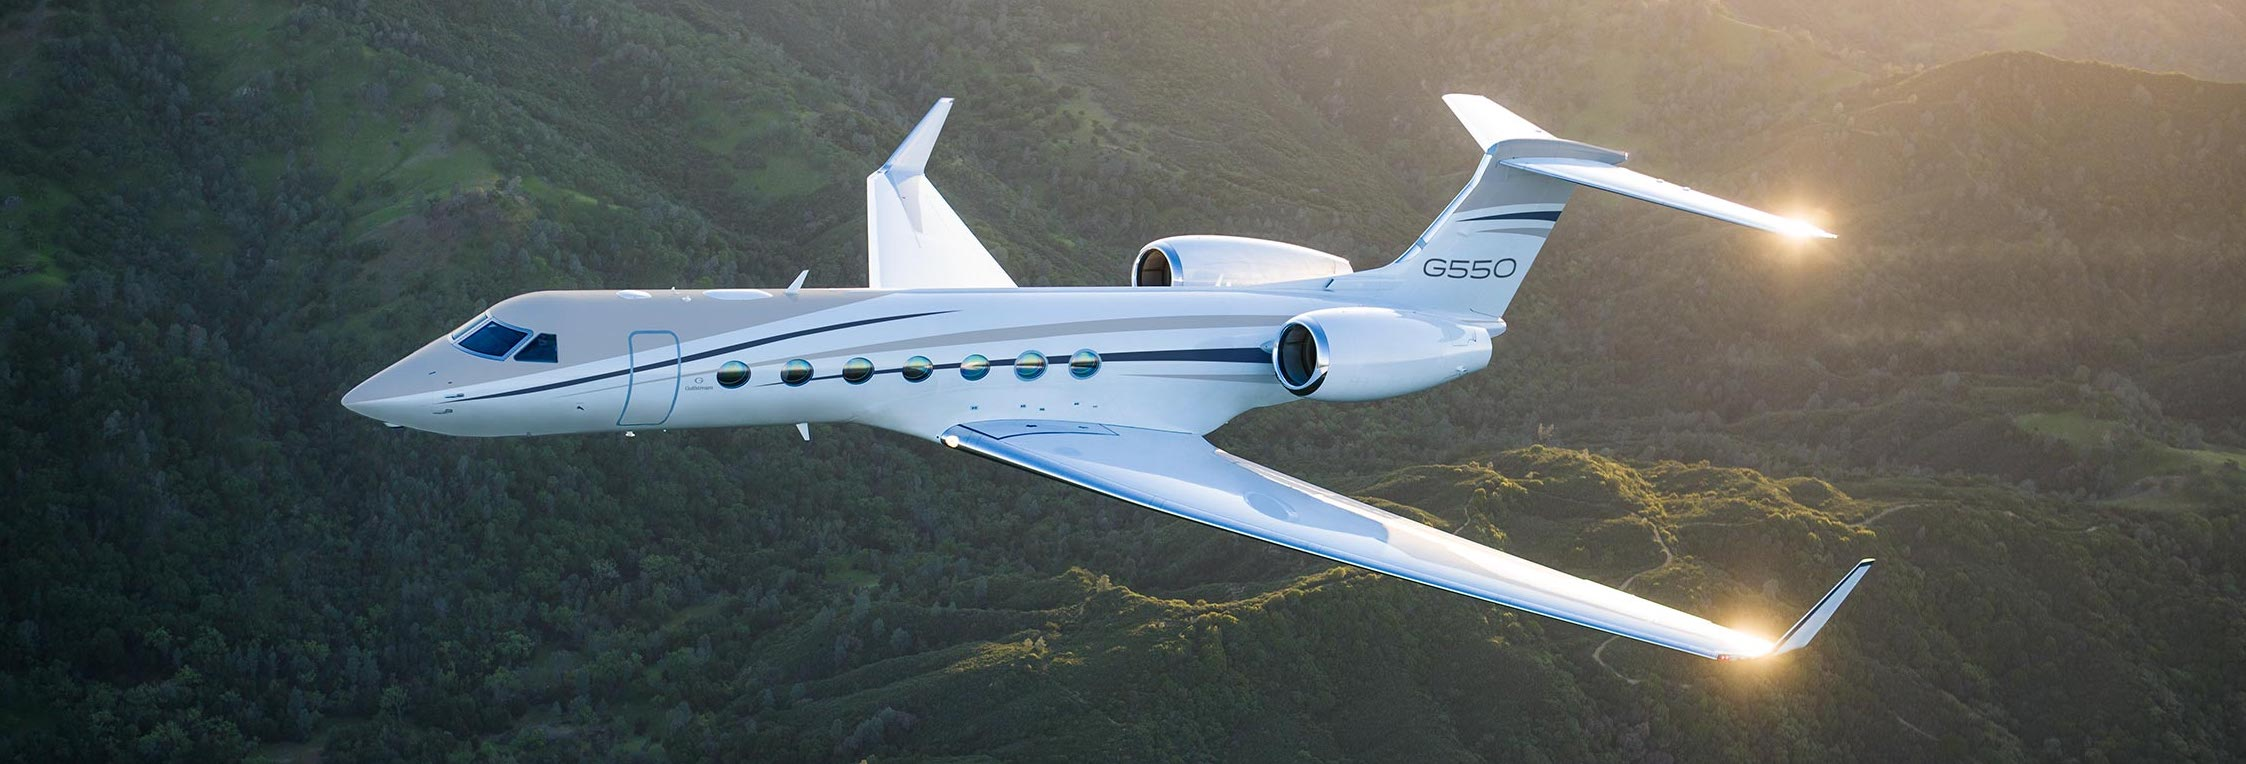 The luxurious Gulfstream G550